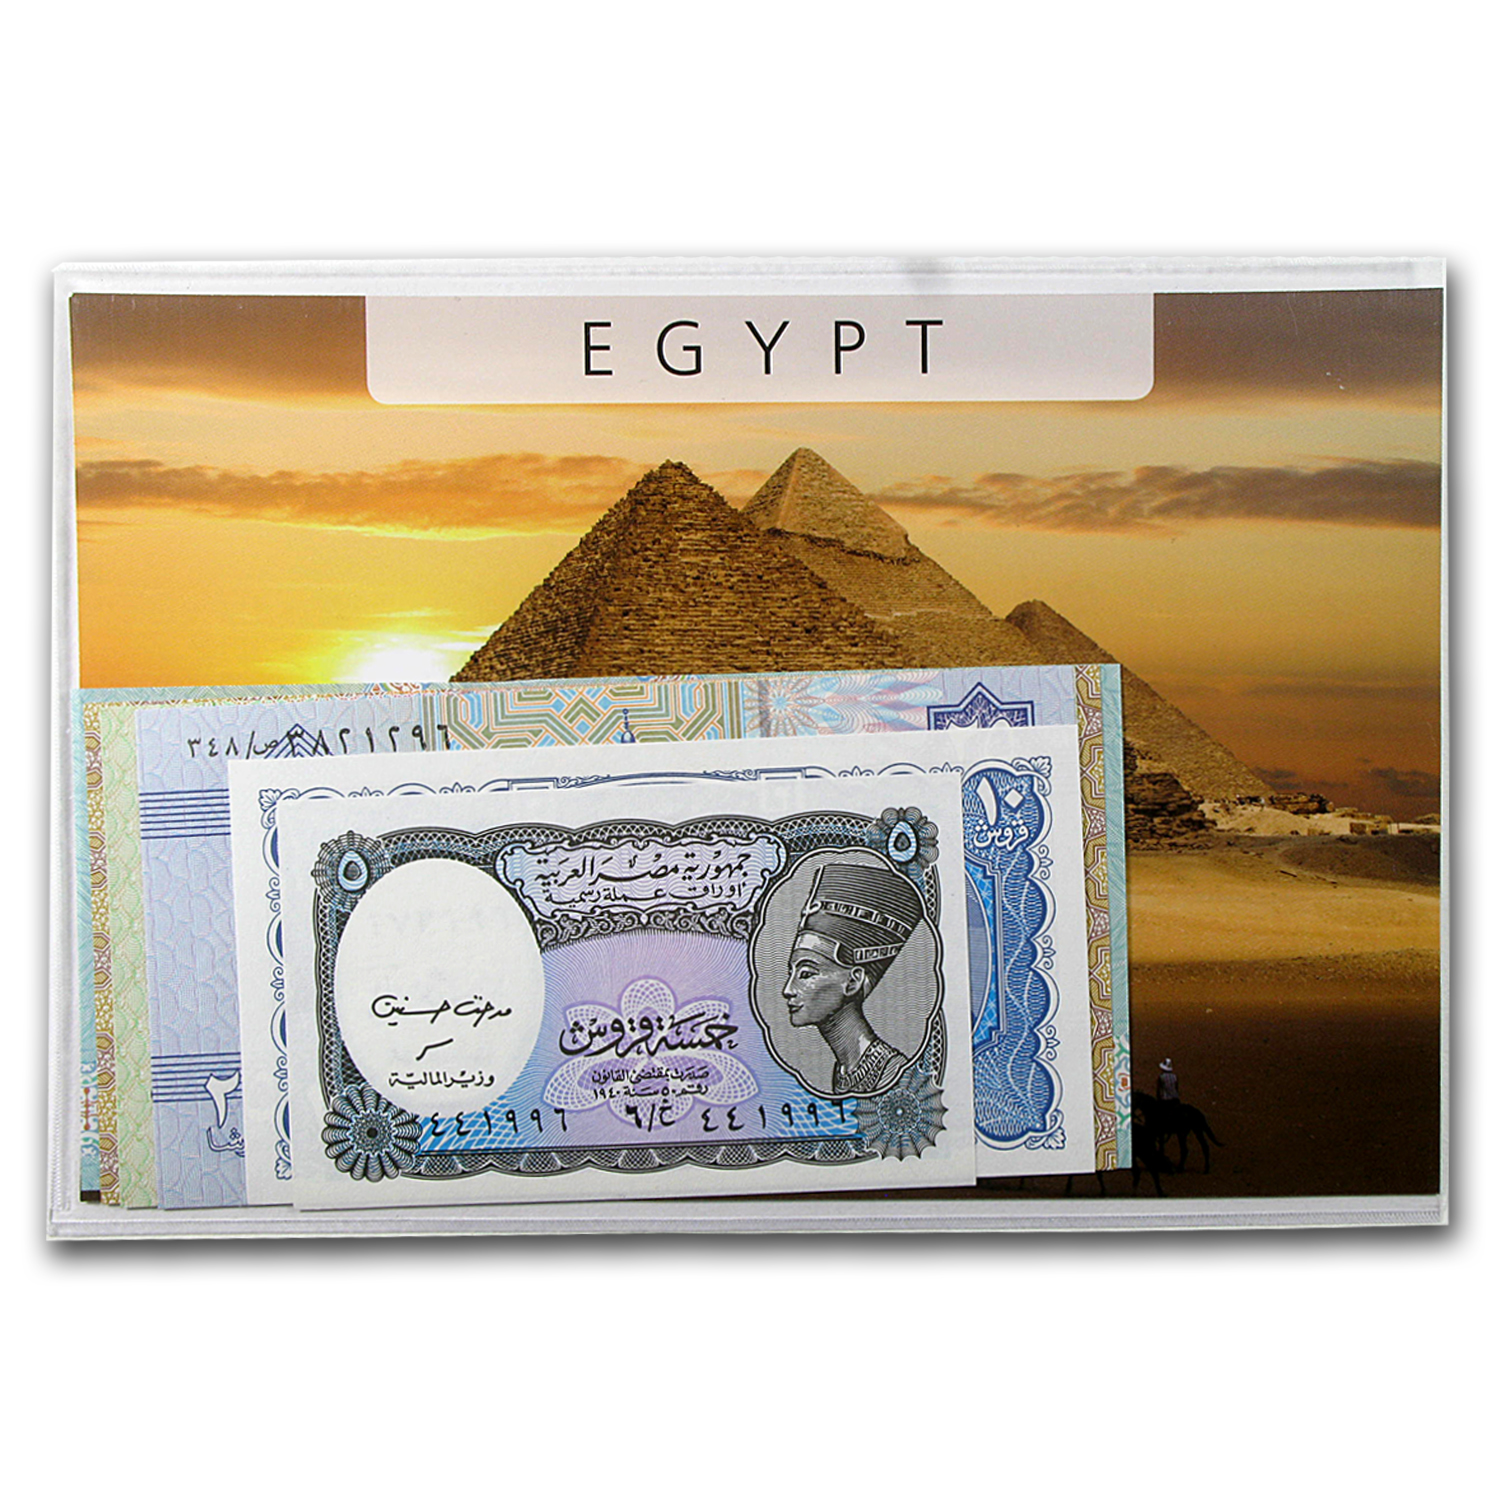 2004-2009 Egypt 5 Piastres-5 Pounds Banknote Set Unc